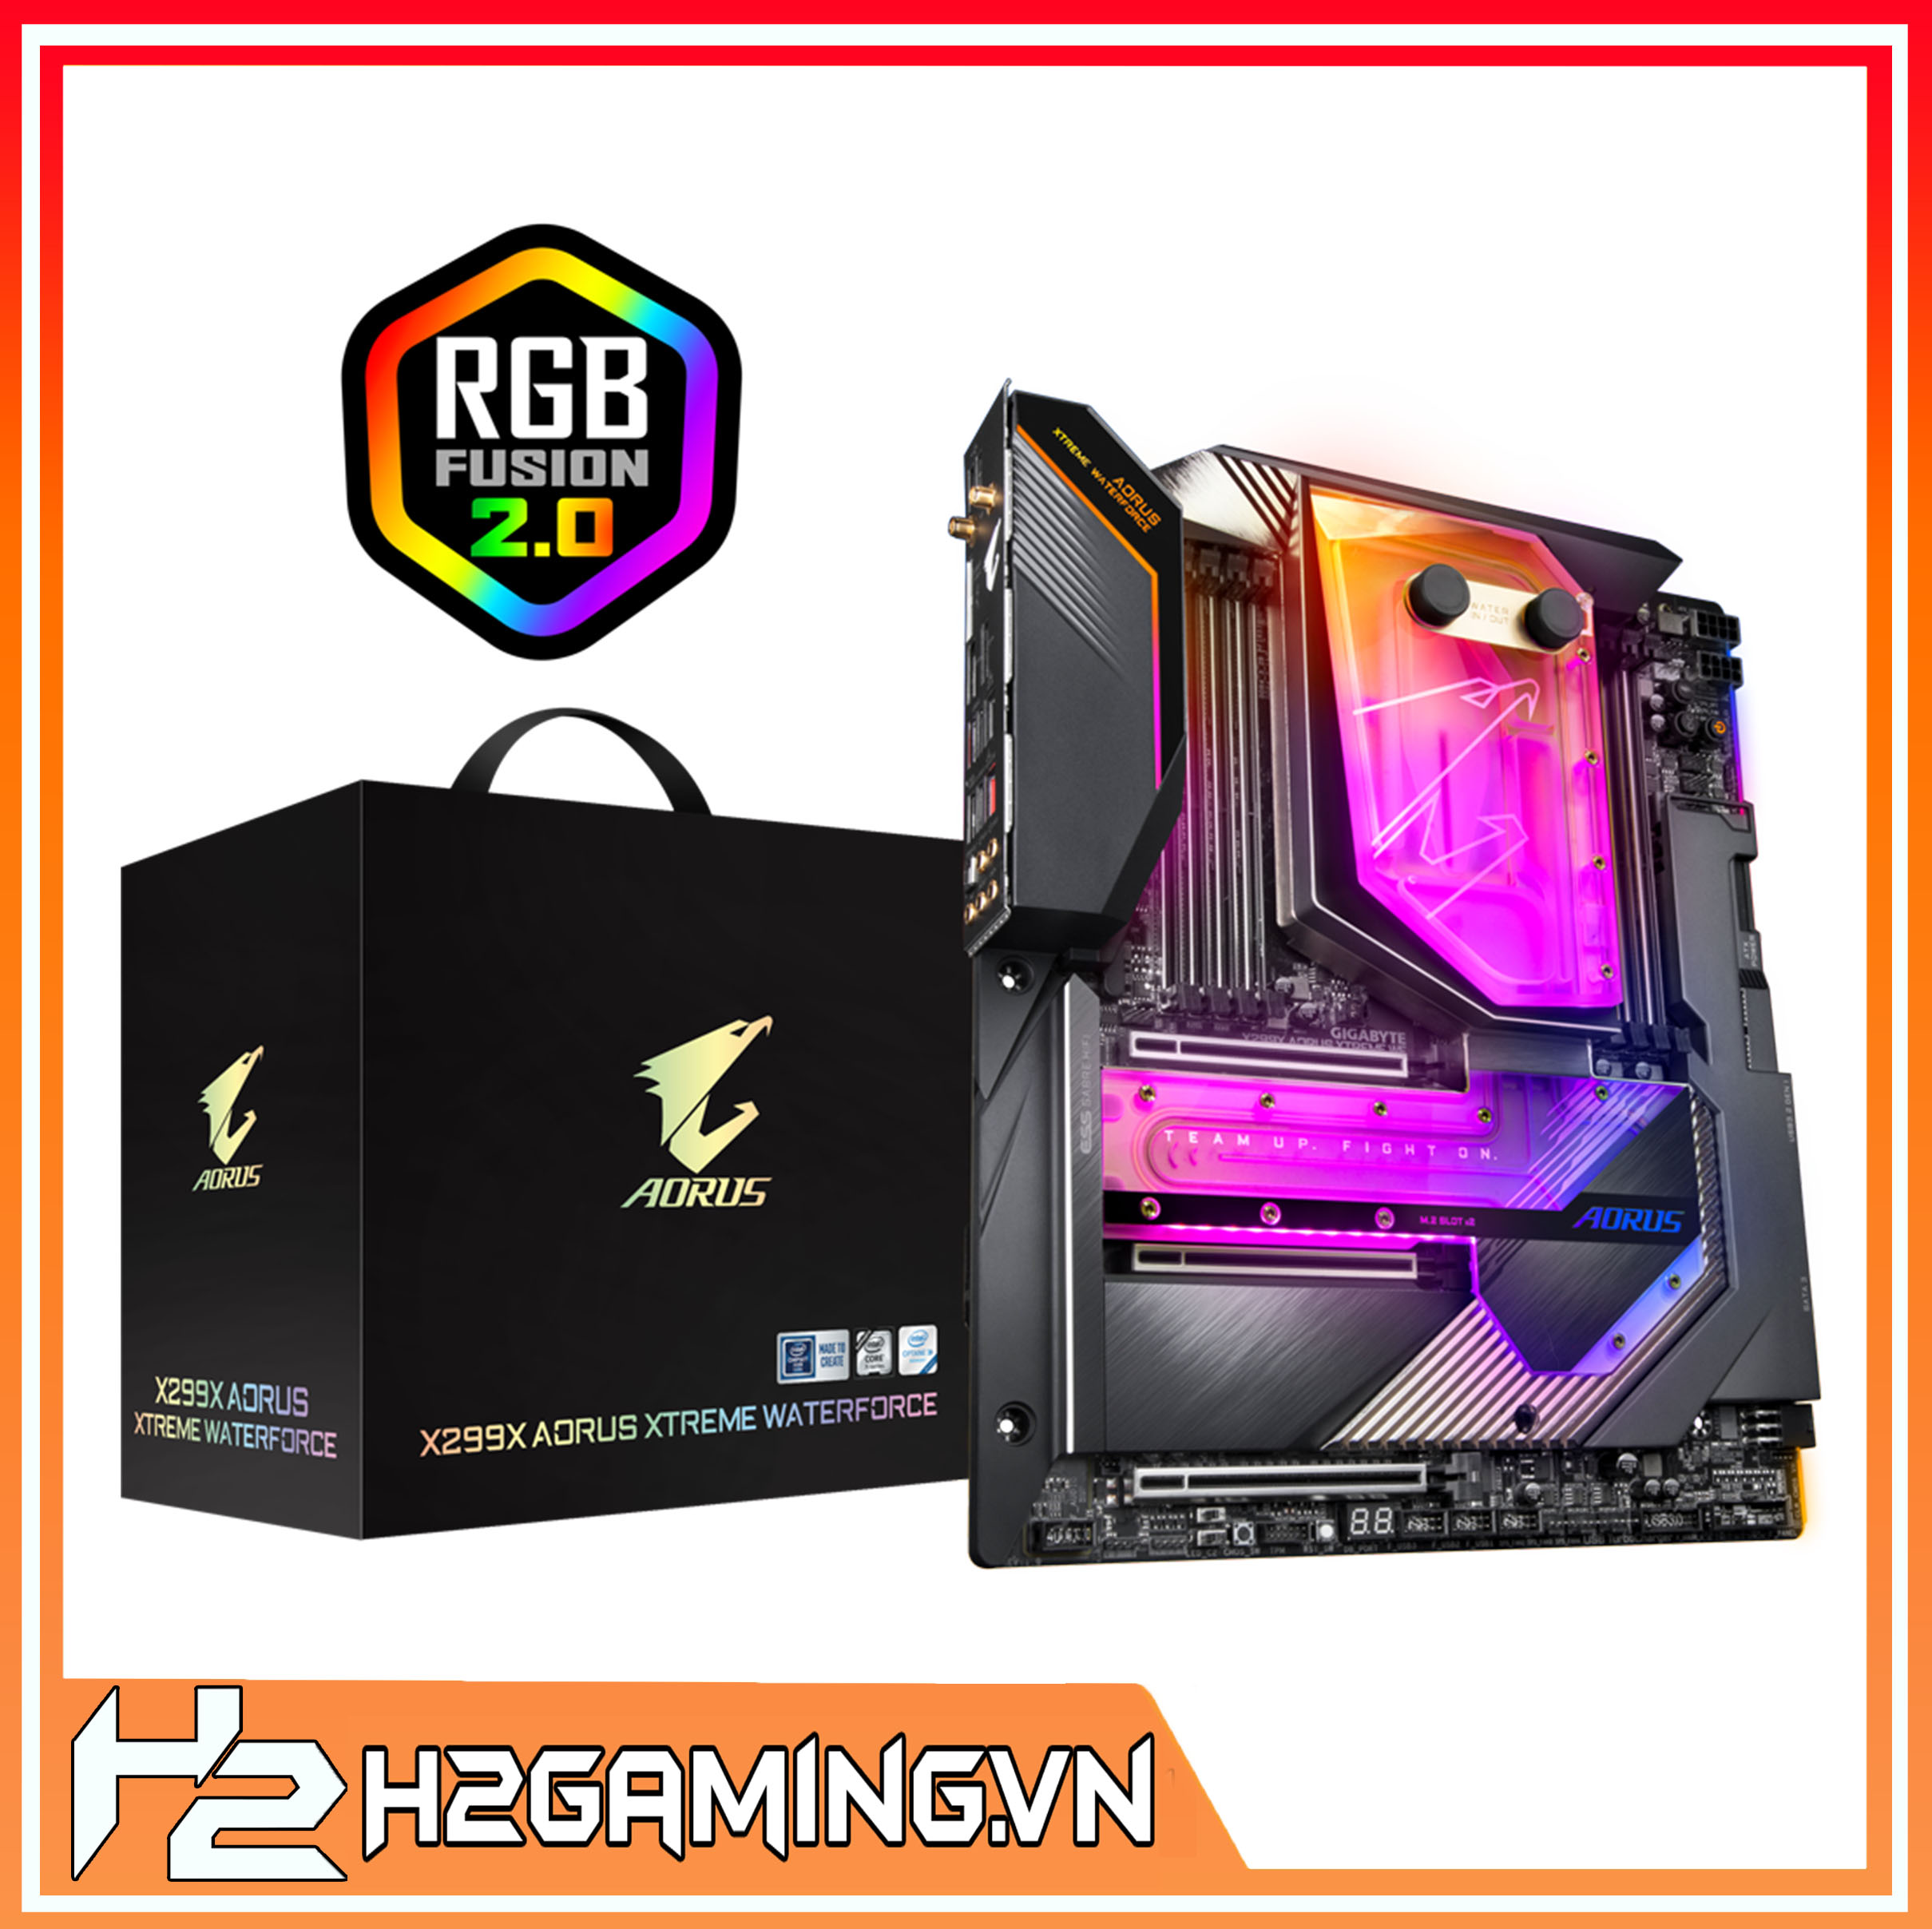 GIGABYTE_Z490_AORUS_XTREME_WATERFORCE